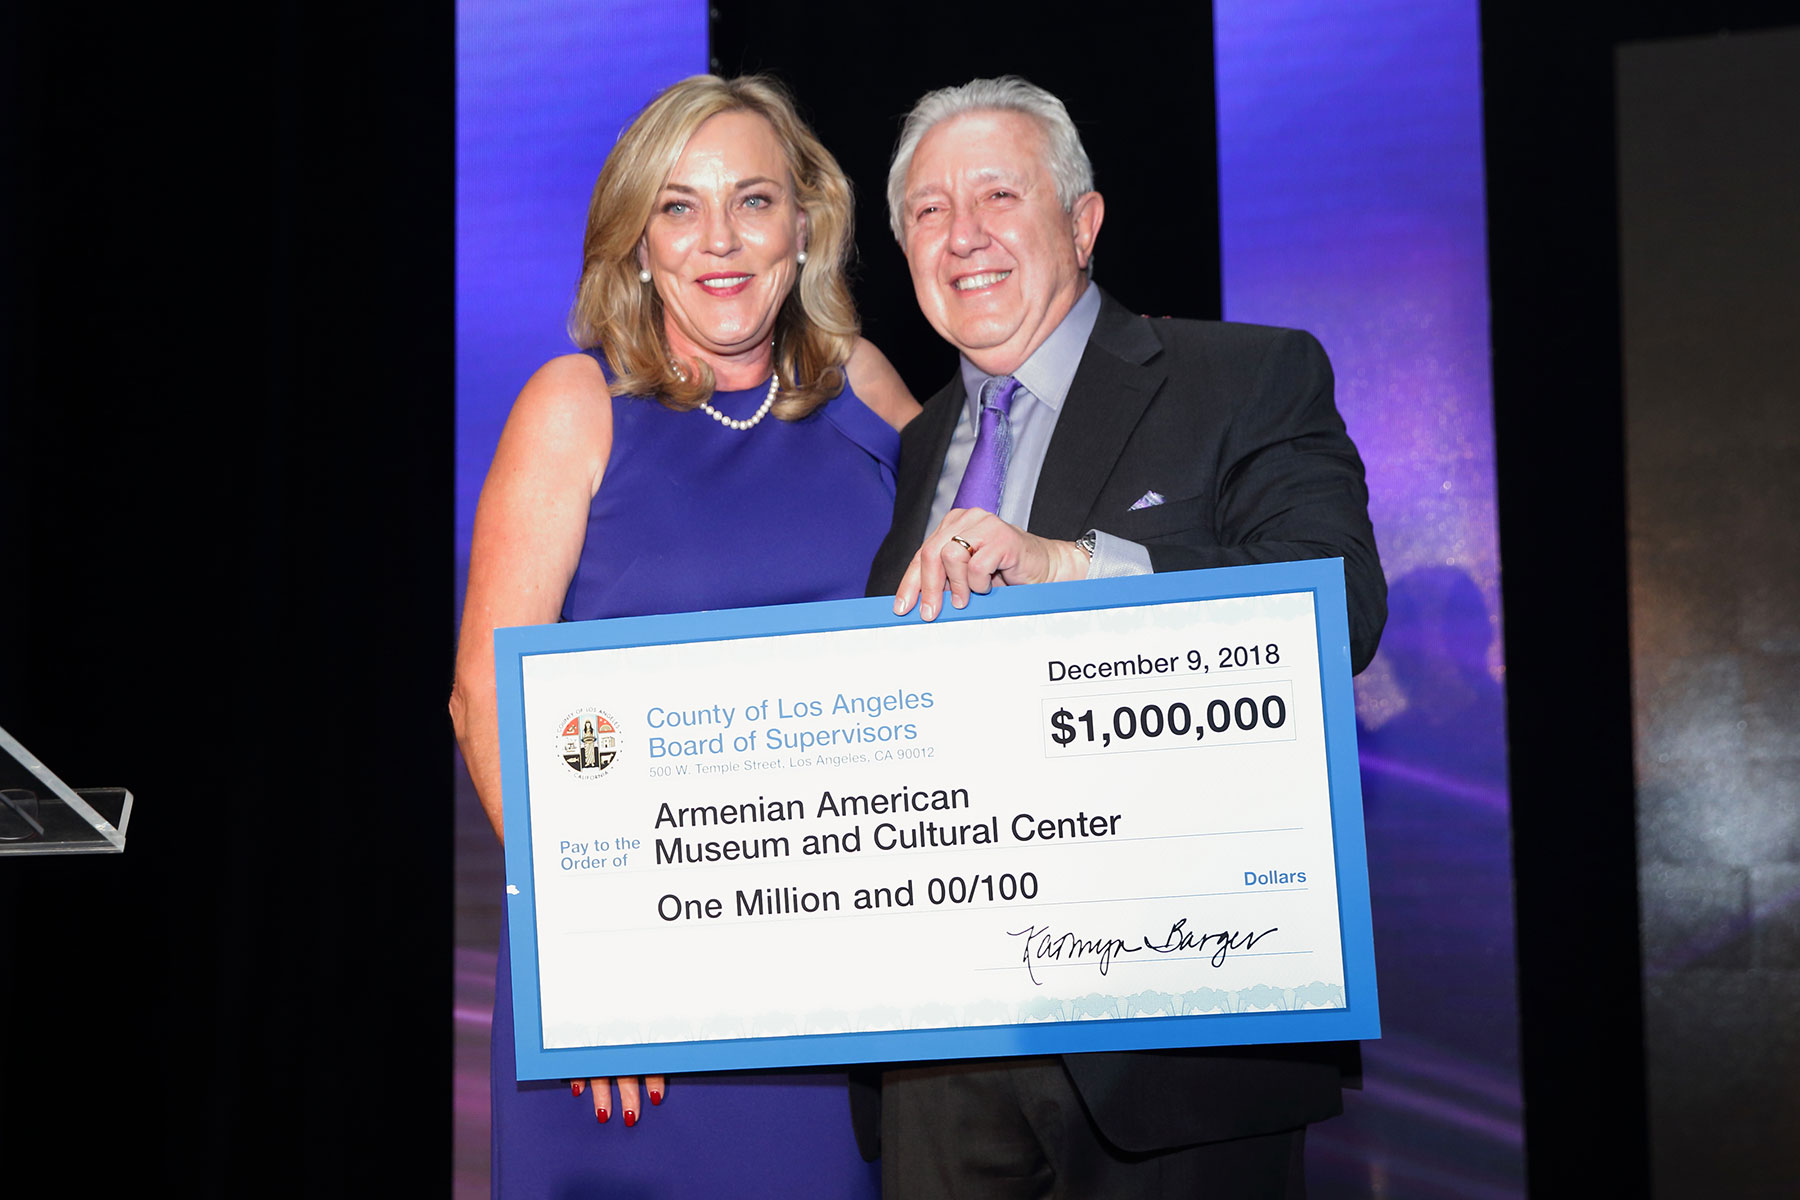 Los Angeles County Supervisor Kathryn Barger Presenting $1 Million Check to Armenian American Museum Executive Chairman Berdj Karapetian